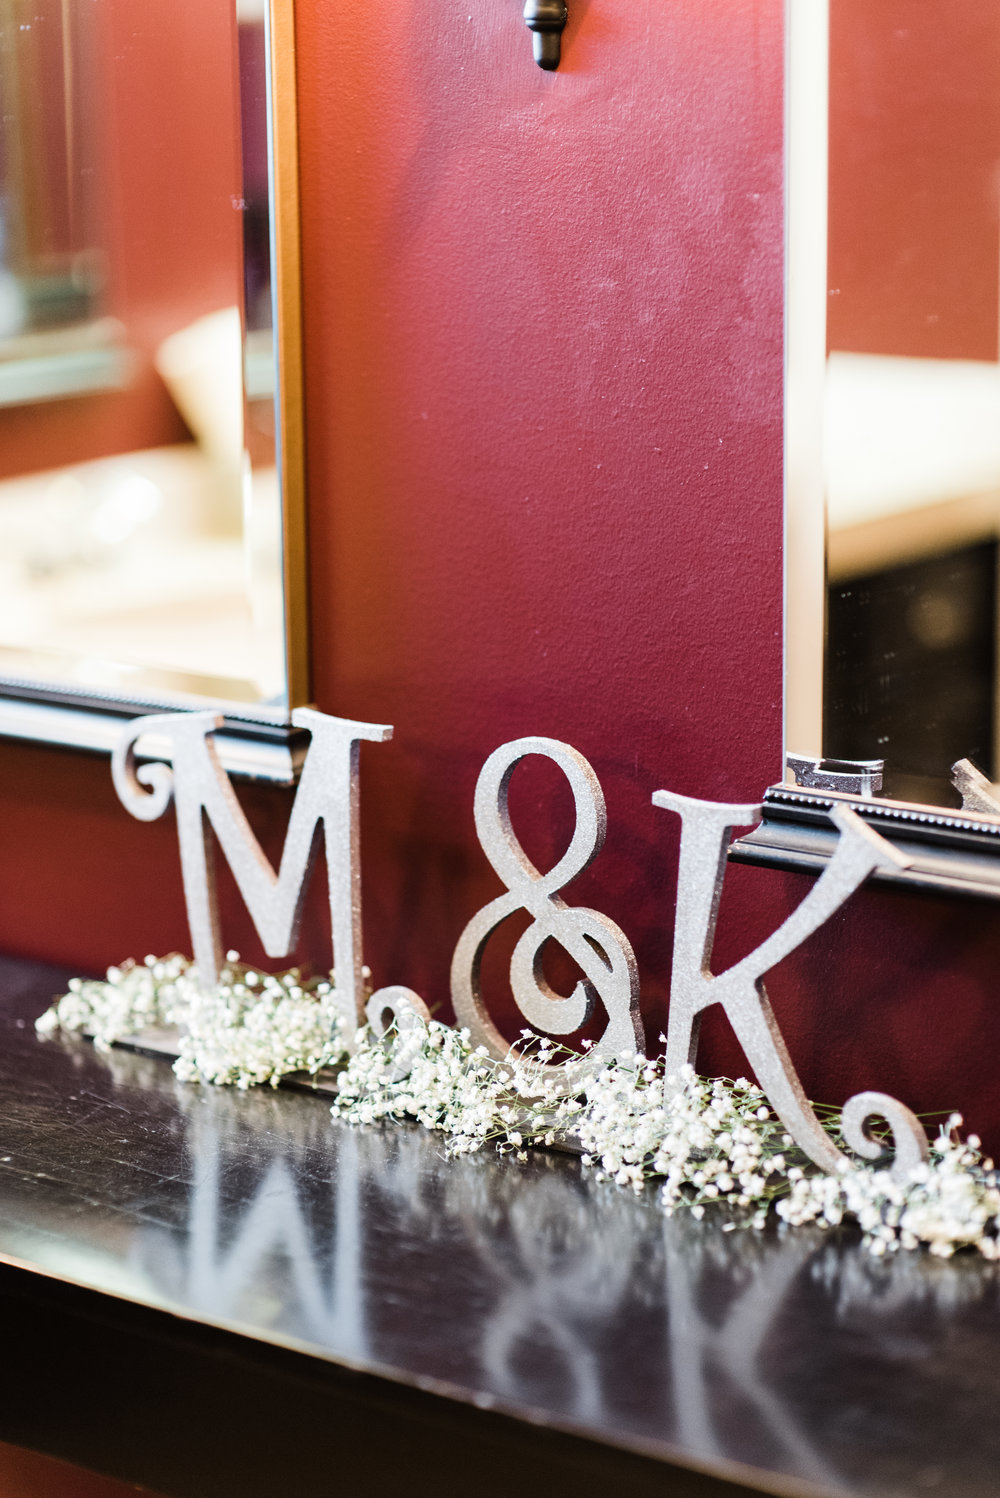 Congrats to Mr. and Mrs. Wilson! Photos courtest of LaYoung Photography